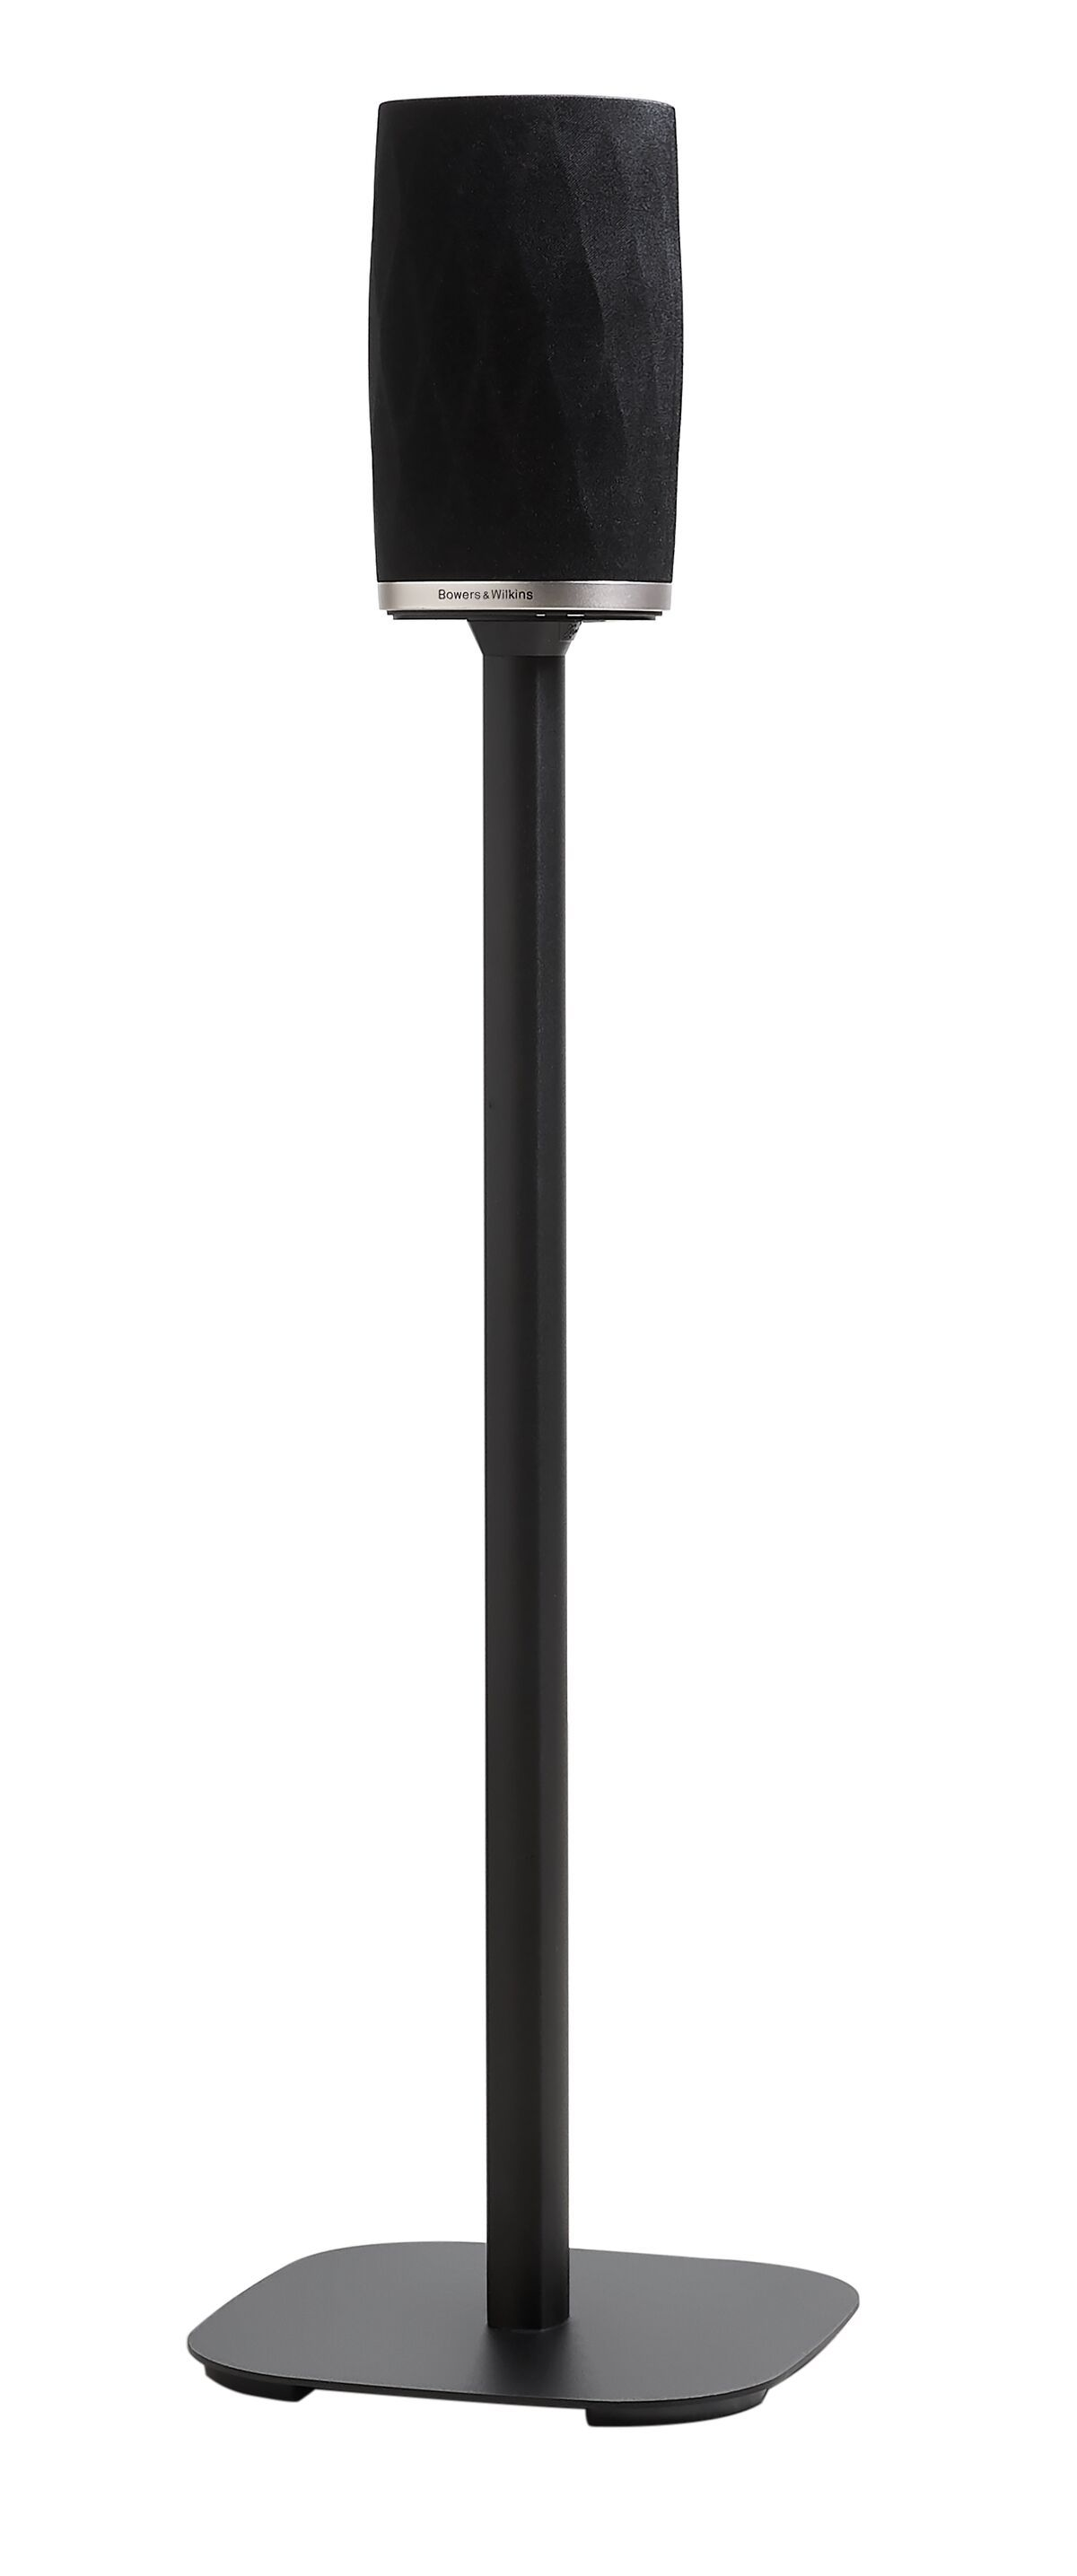 Vogel's SOUND 6301 Speaker Stand for Bowers & Wilkins Formation Flex - Application